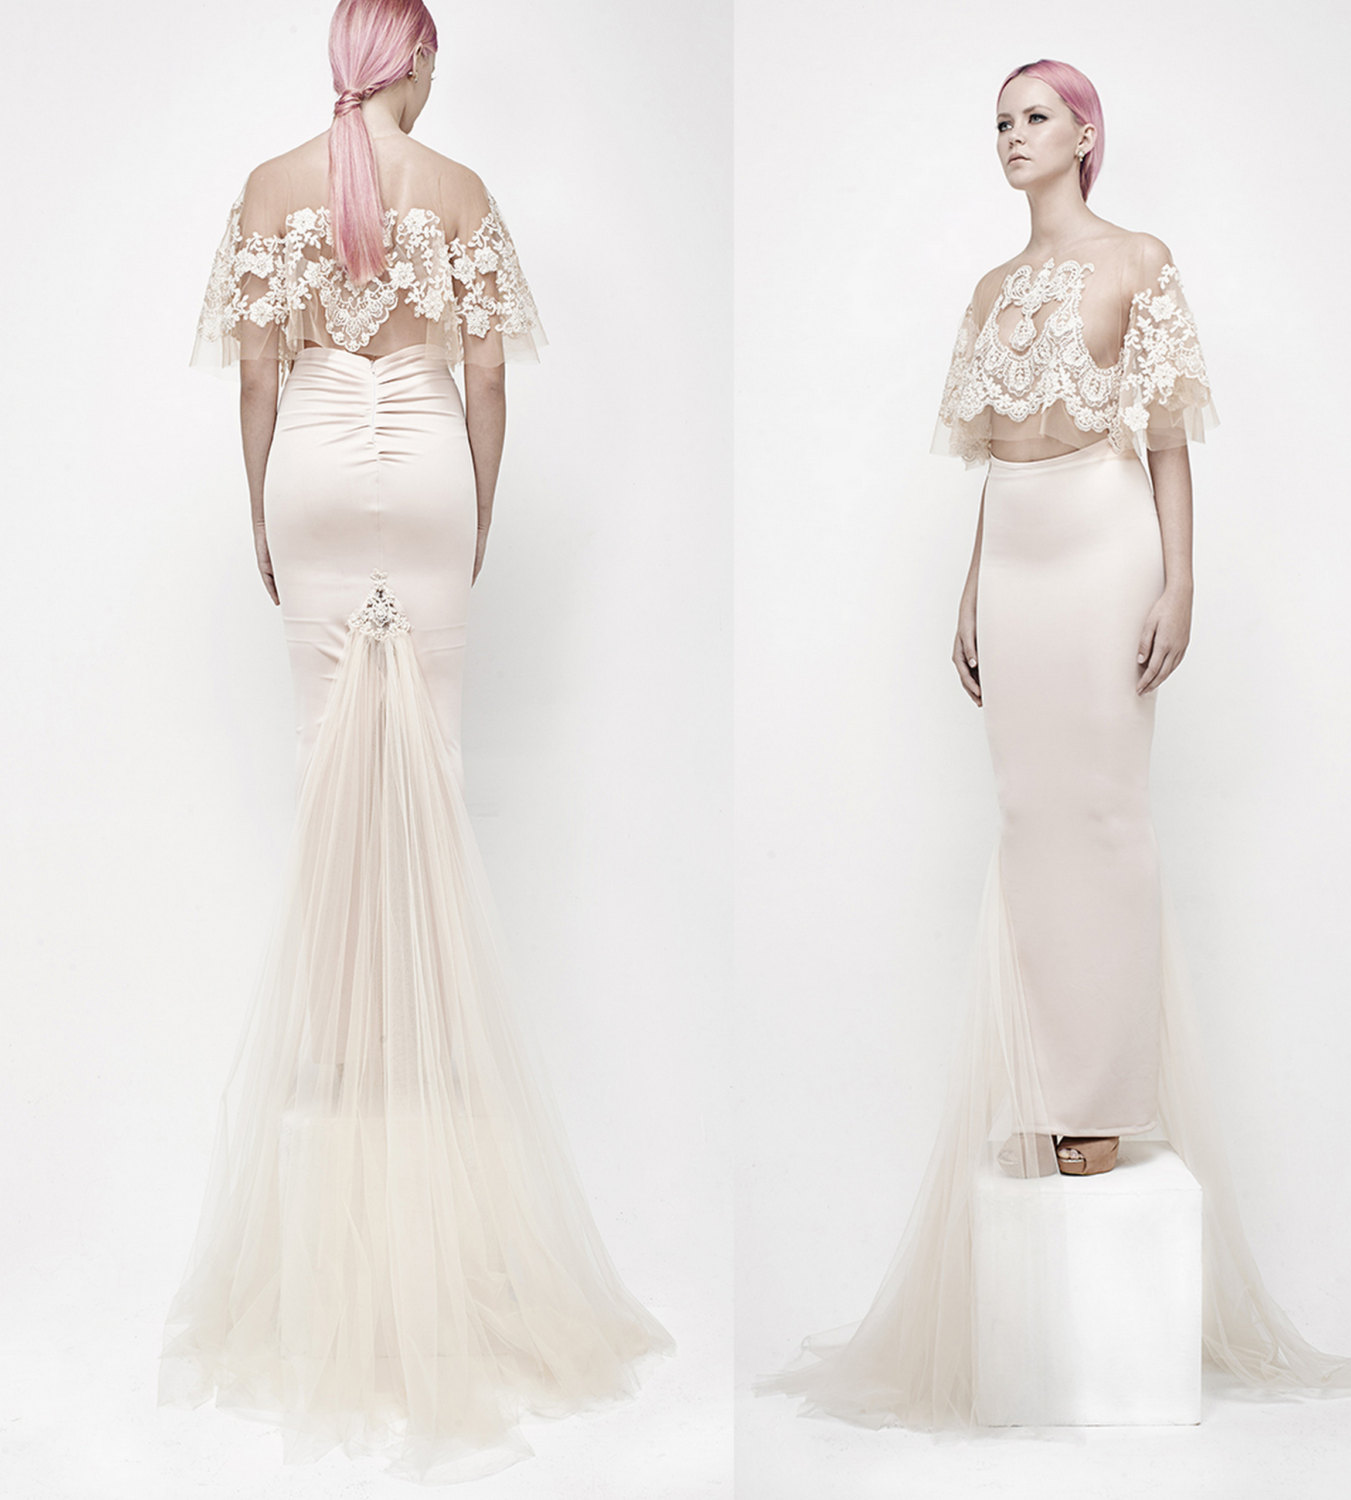 Elegant bridal separates